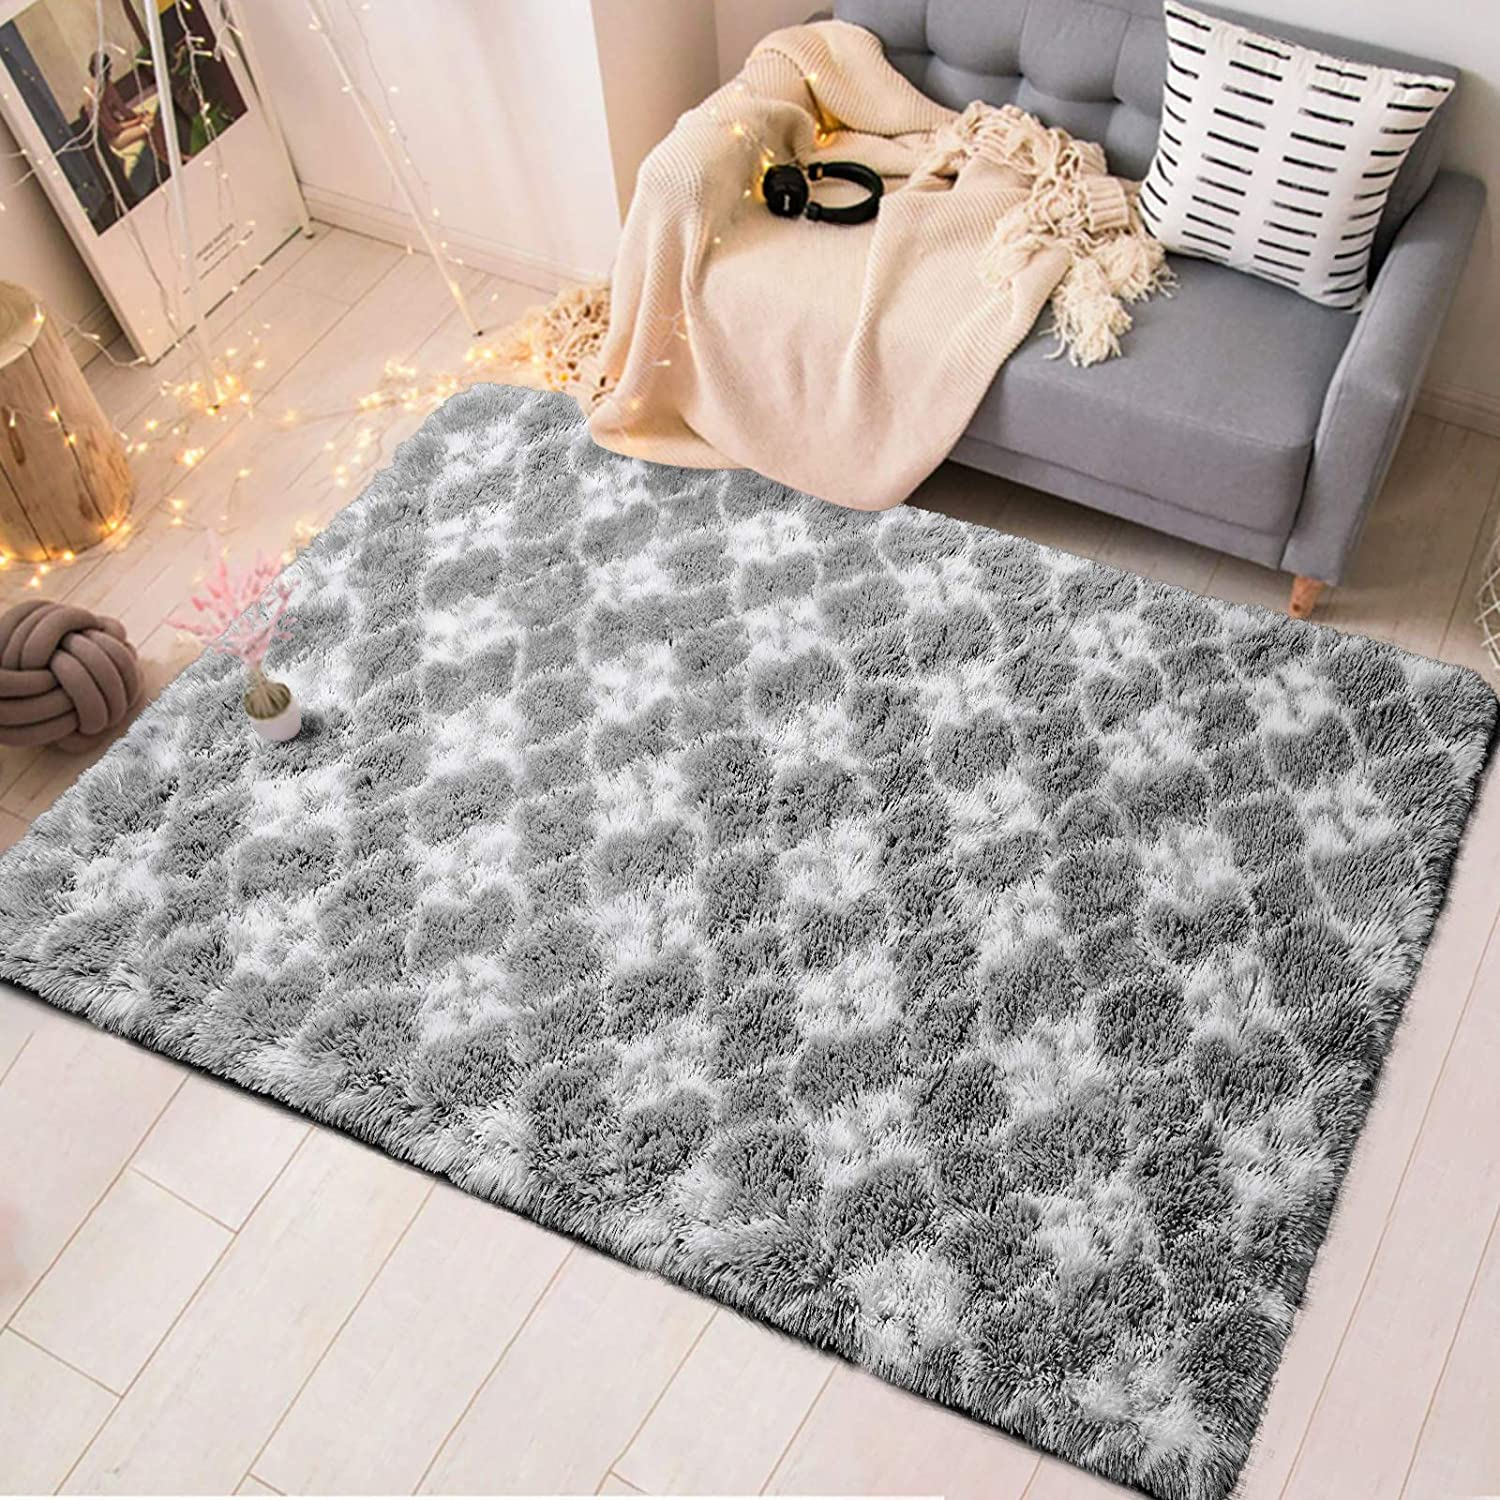 Zareas Soft Fluffy Area Rugs for Living Room 4x6 White Grey Shag Rug for Bedroom Fuzzy Furry Carpet for Kids Girls Boys Long Fur Indoor Dorm Nursery Floor Comfy Accent Home Decor Modern Abstract Mat